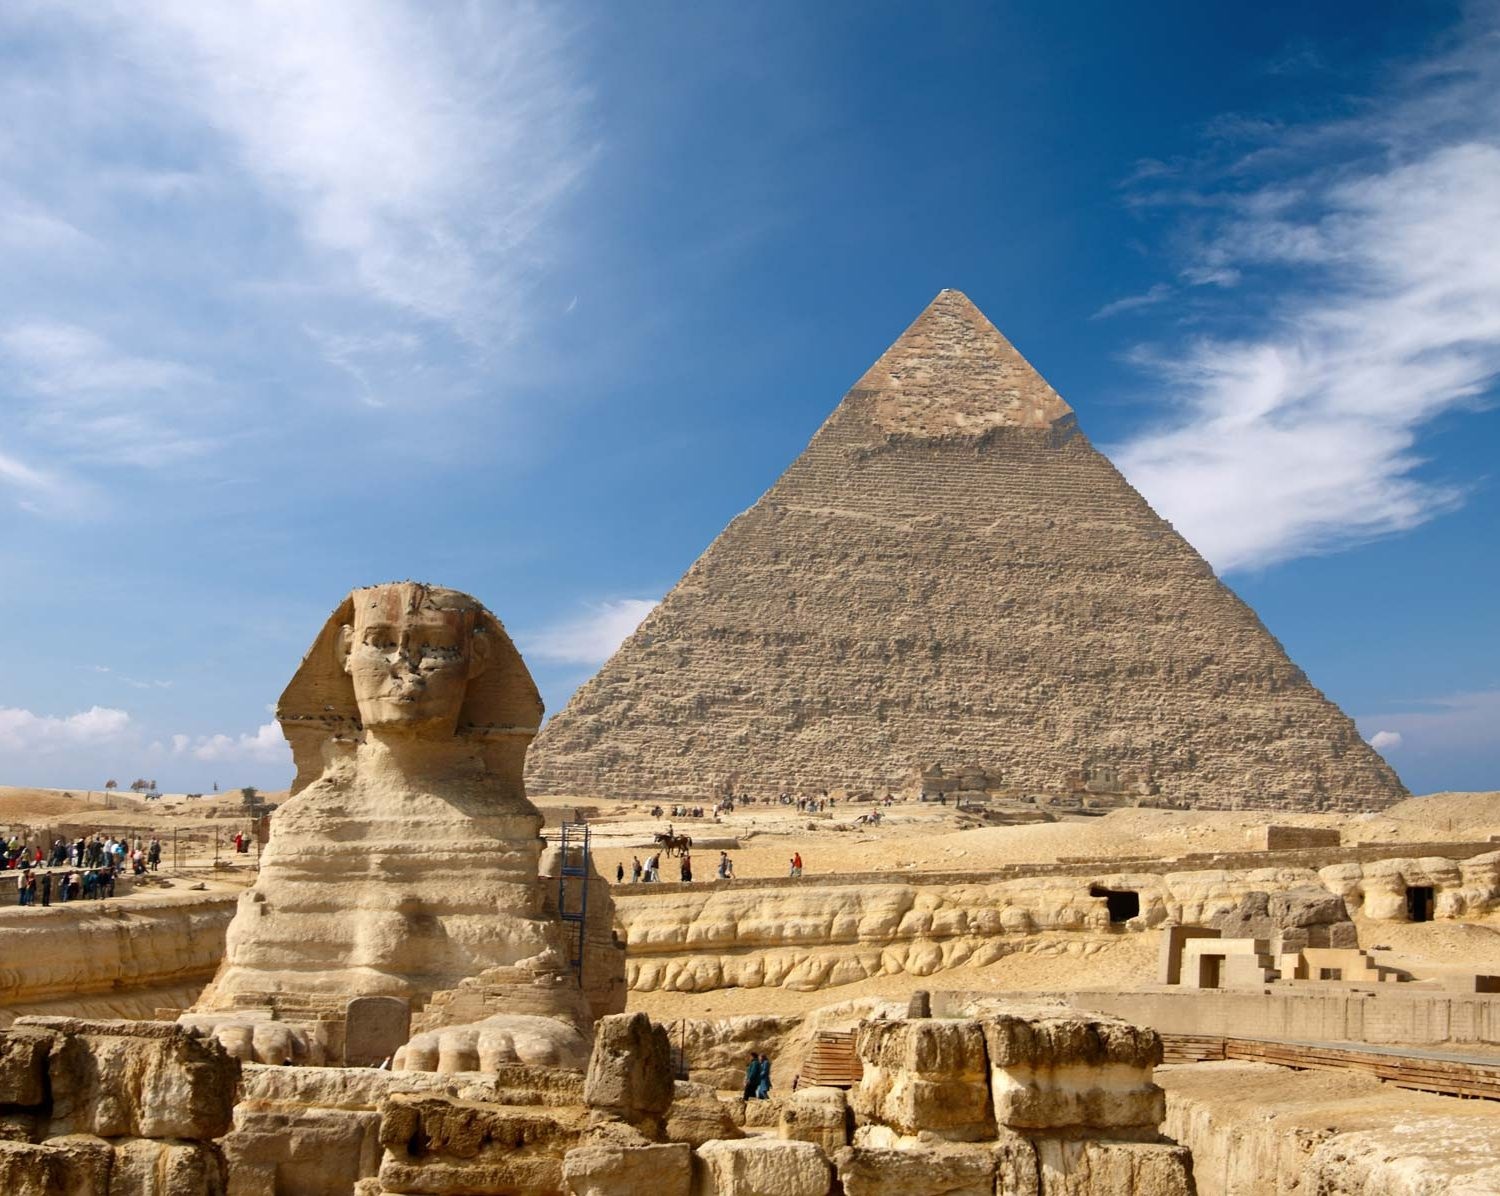 Great-Sphinx-of-Giza-pyramid-background-Khafre | merveilleuse egypte